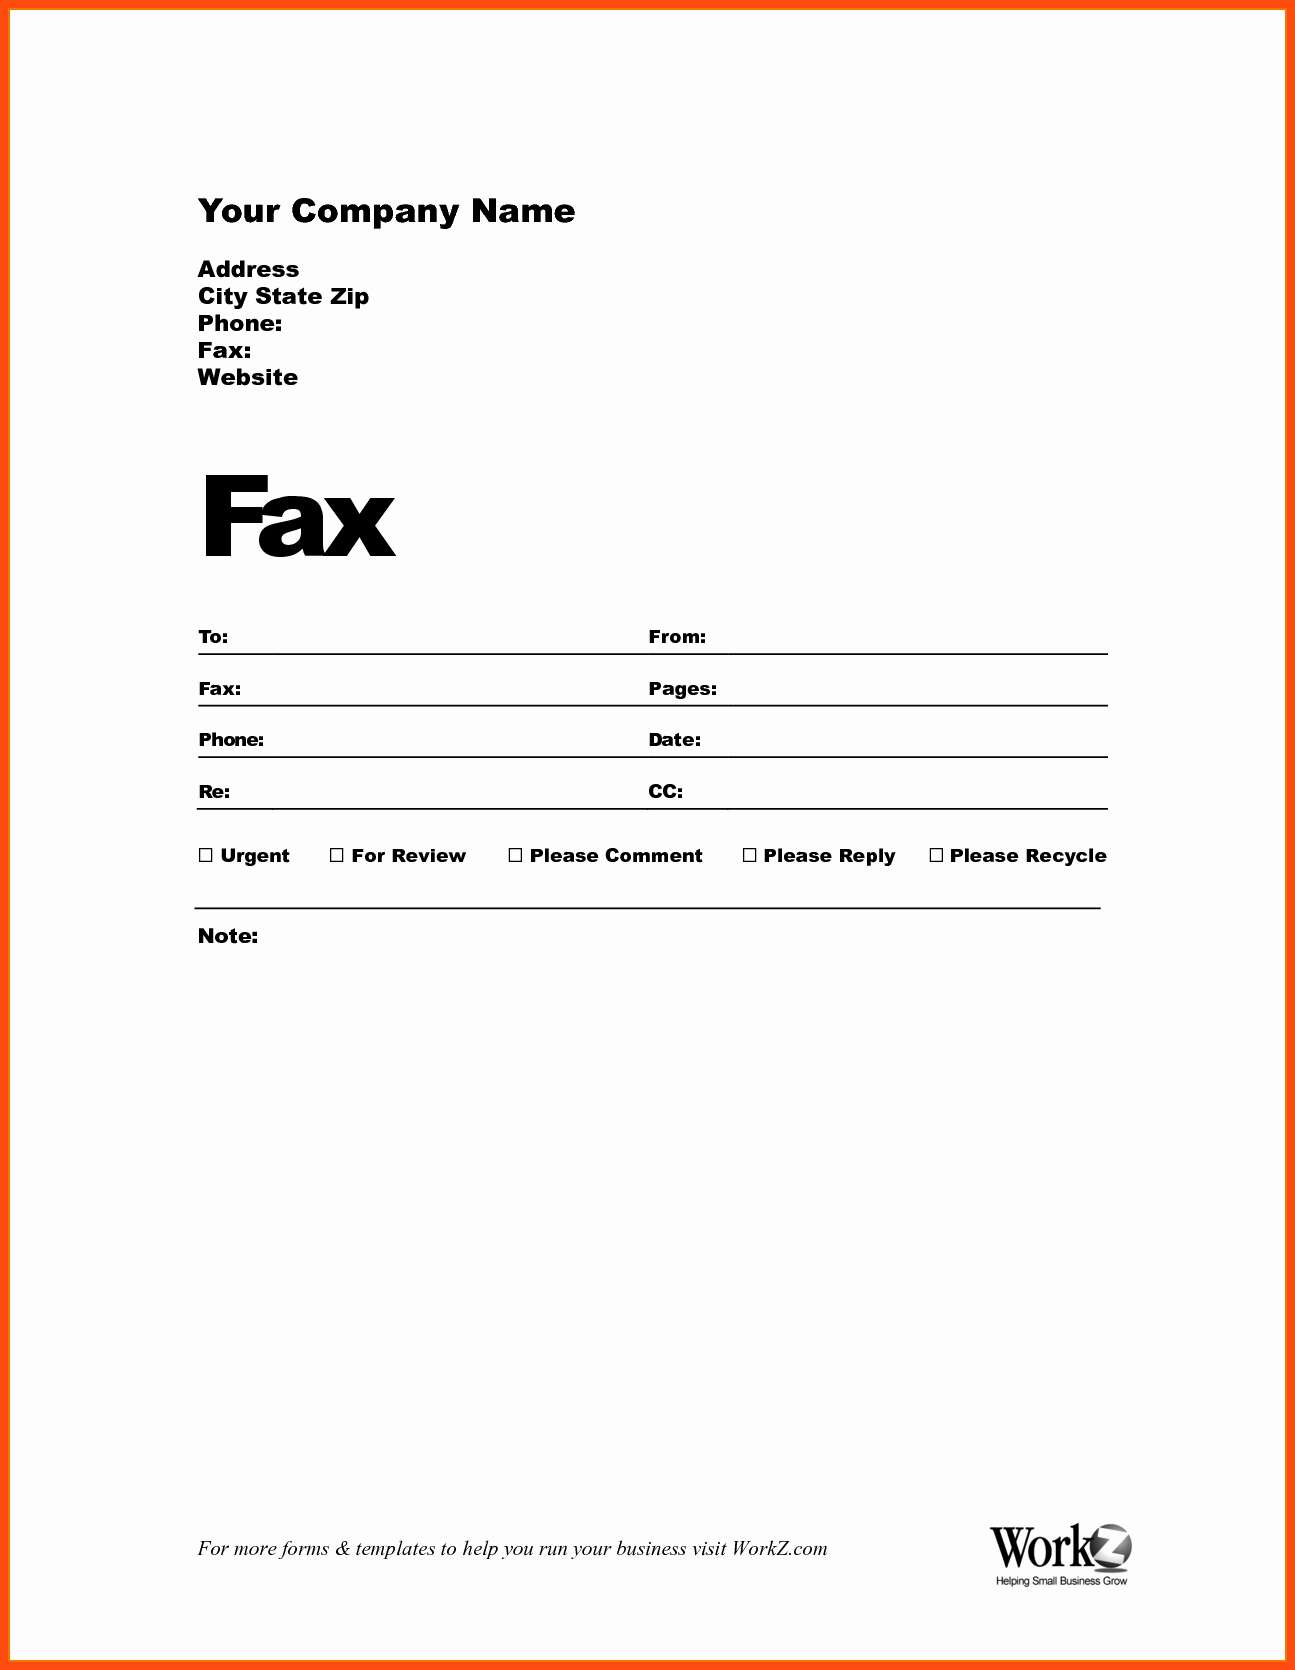 Fax Cover Page New How to Fill Out A Fax Cover Sheet